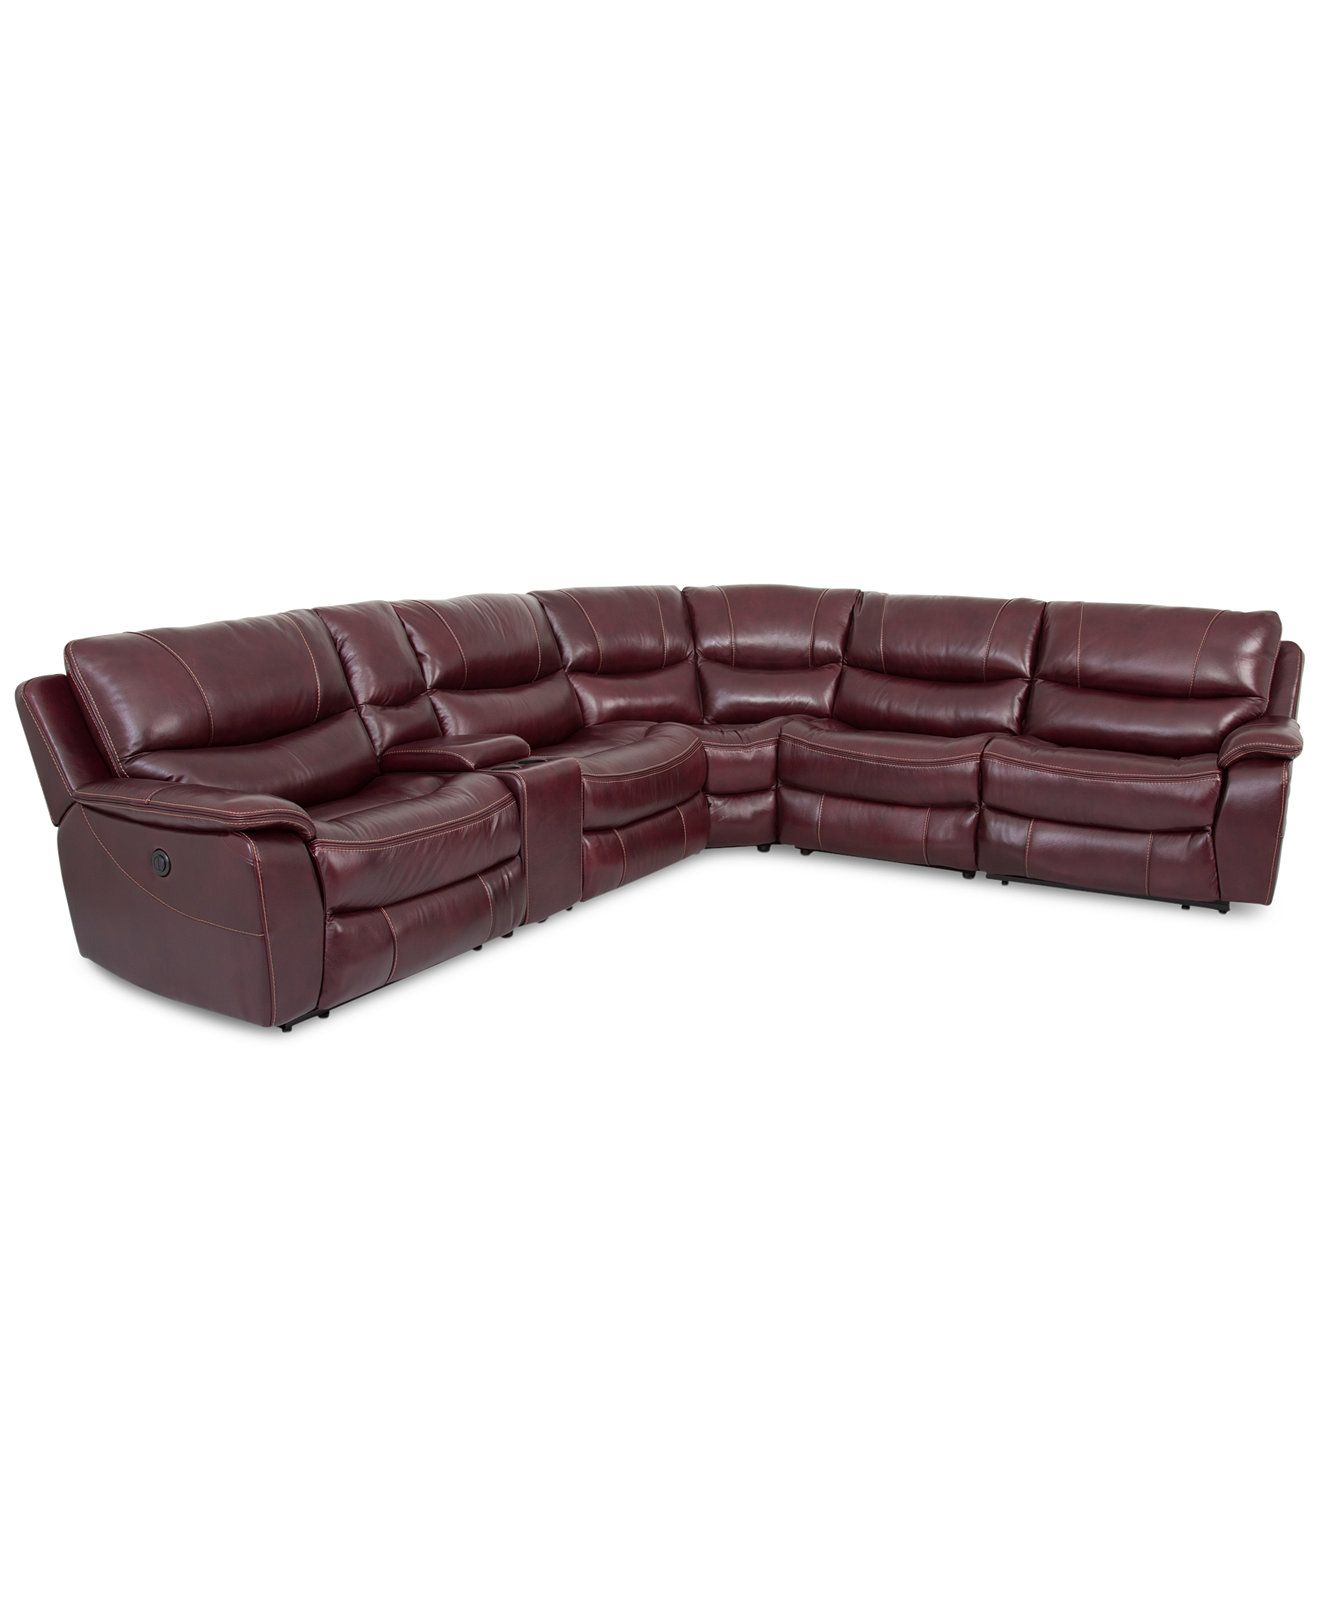 CLOSEOUT Daren Leather 6pc Sectional Sofa with 3 Power Recliners